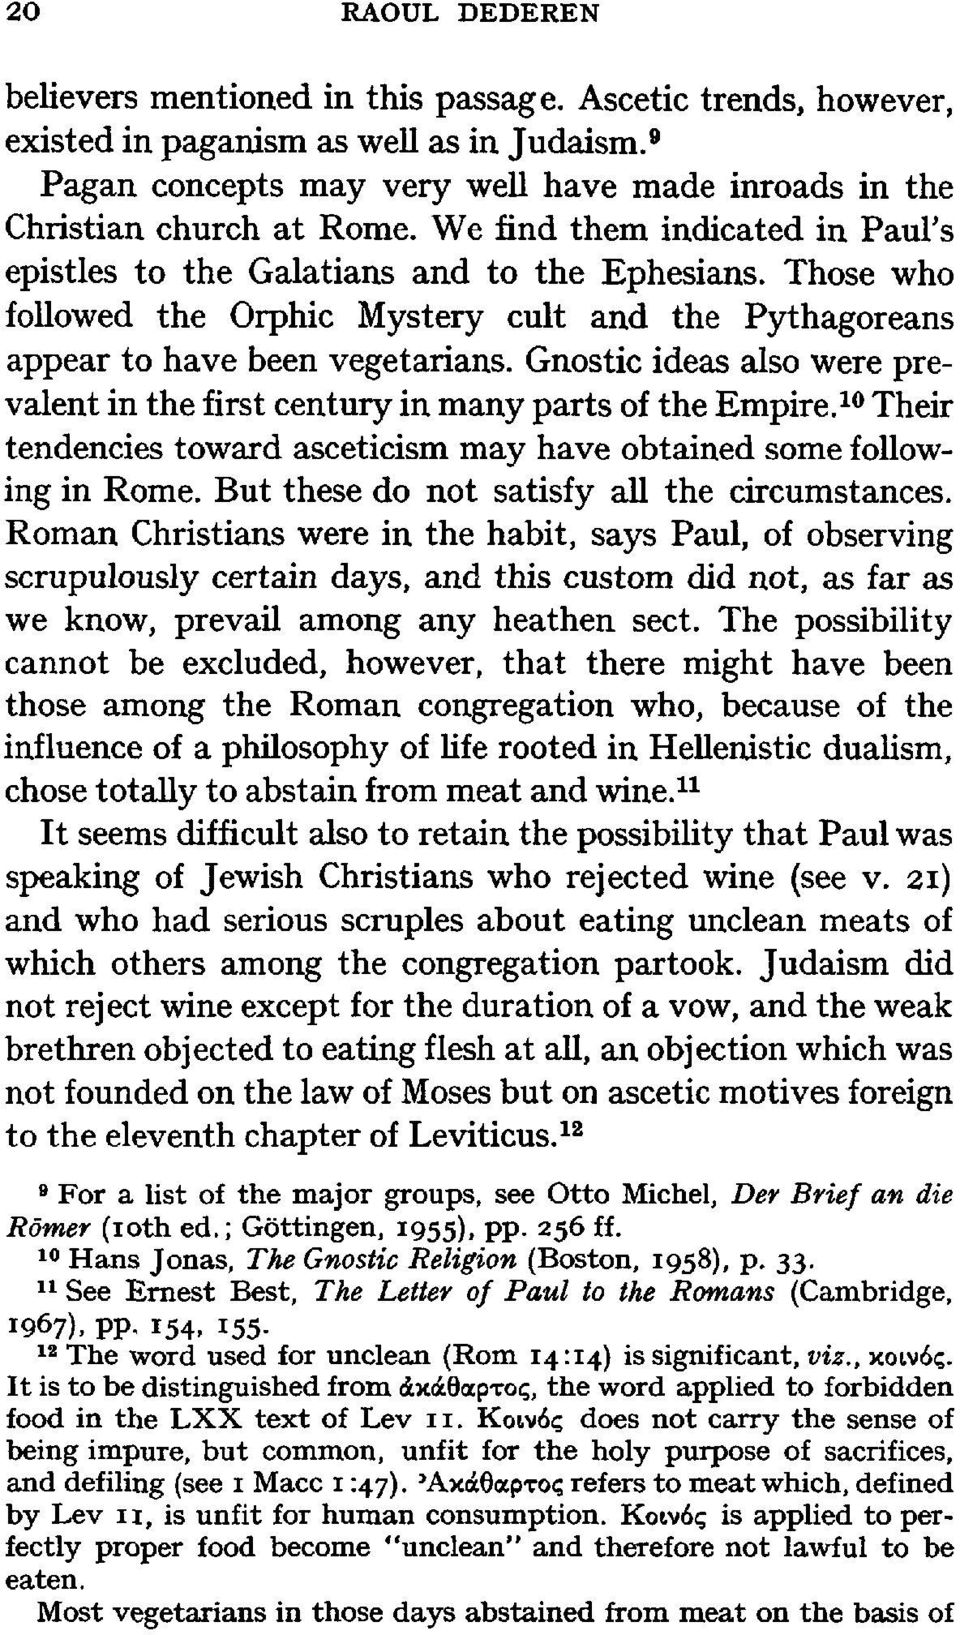 Those who followed the Orphic Mystery cult and the Pythagoreans appear to have been vegetarians. Gnostic ideas also were prevalent in the first century in many parts of the Empire.